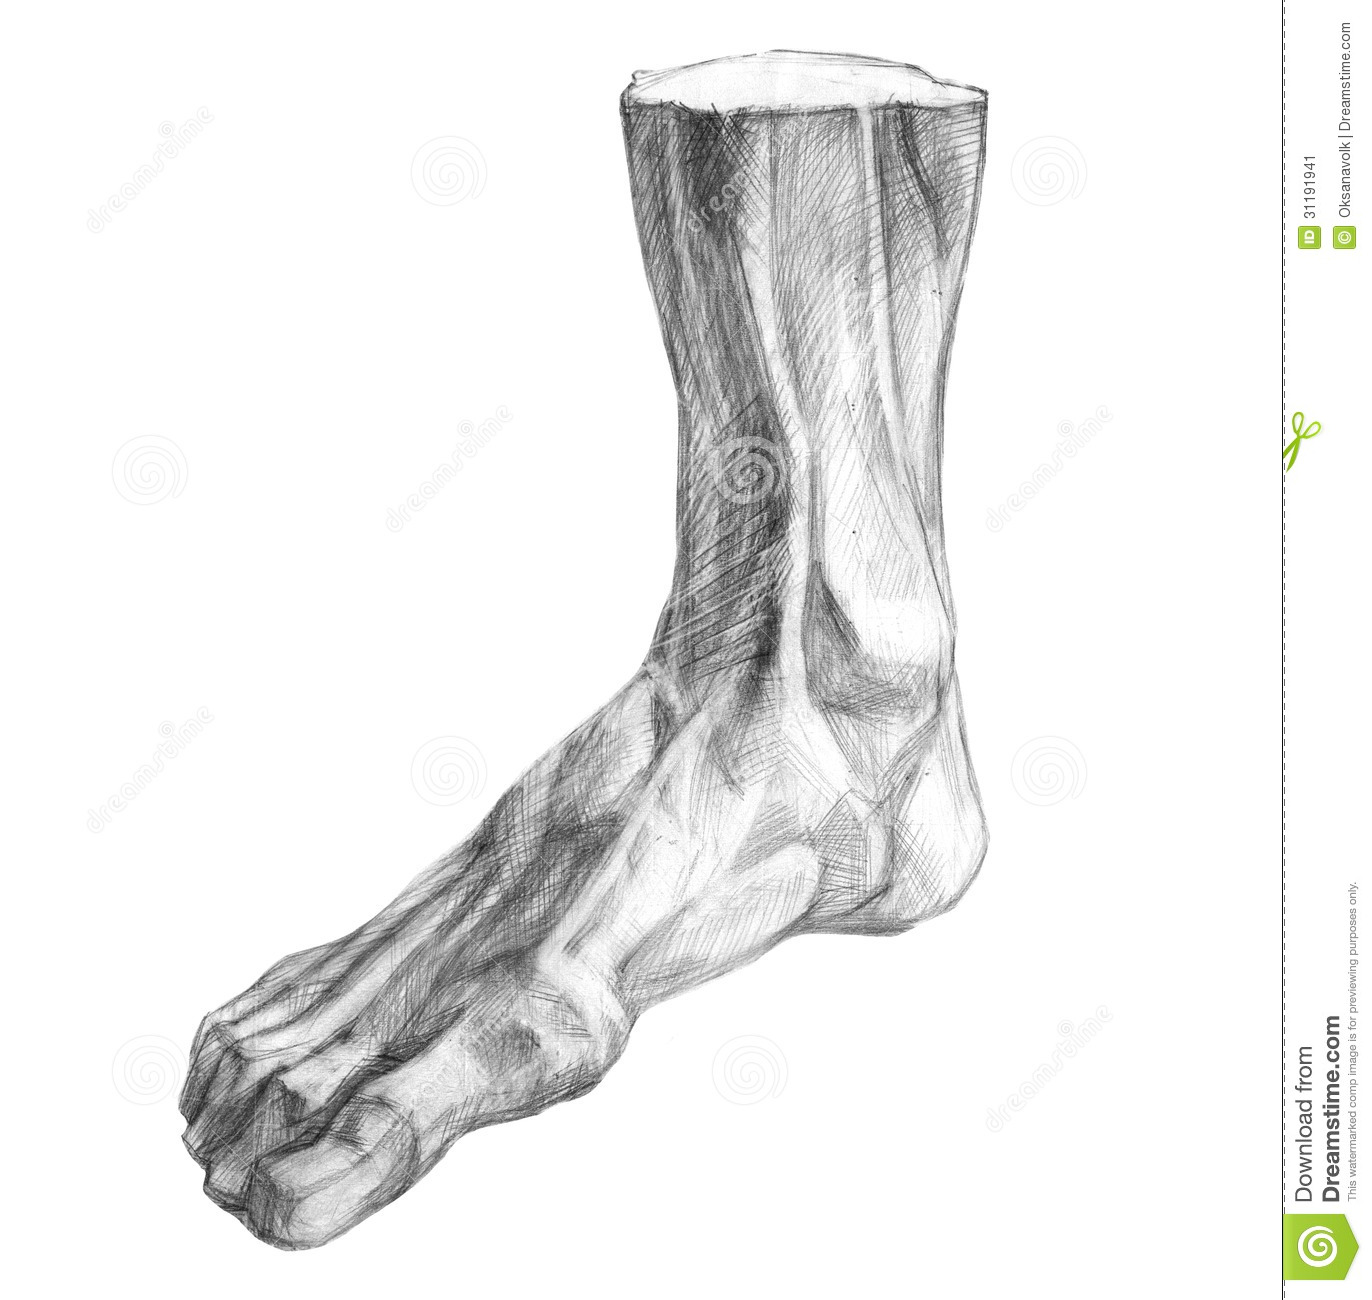 Muscles Of The Human Foot Pencil Drawing Stock Image